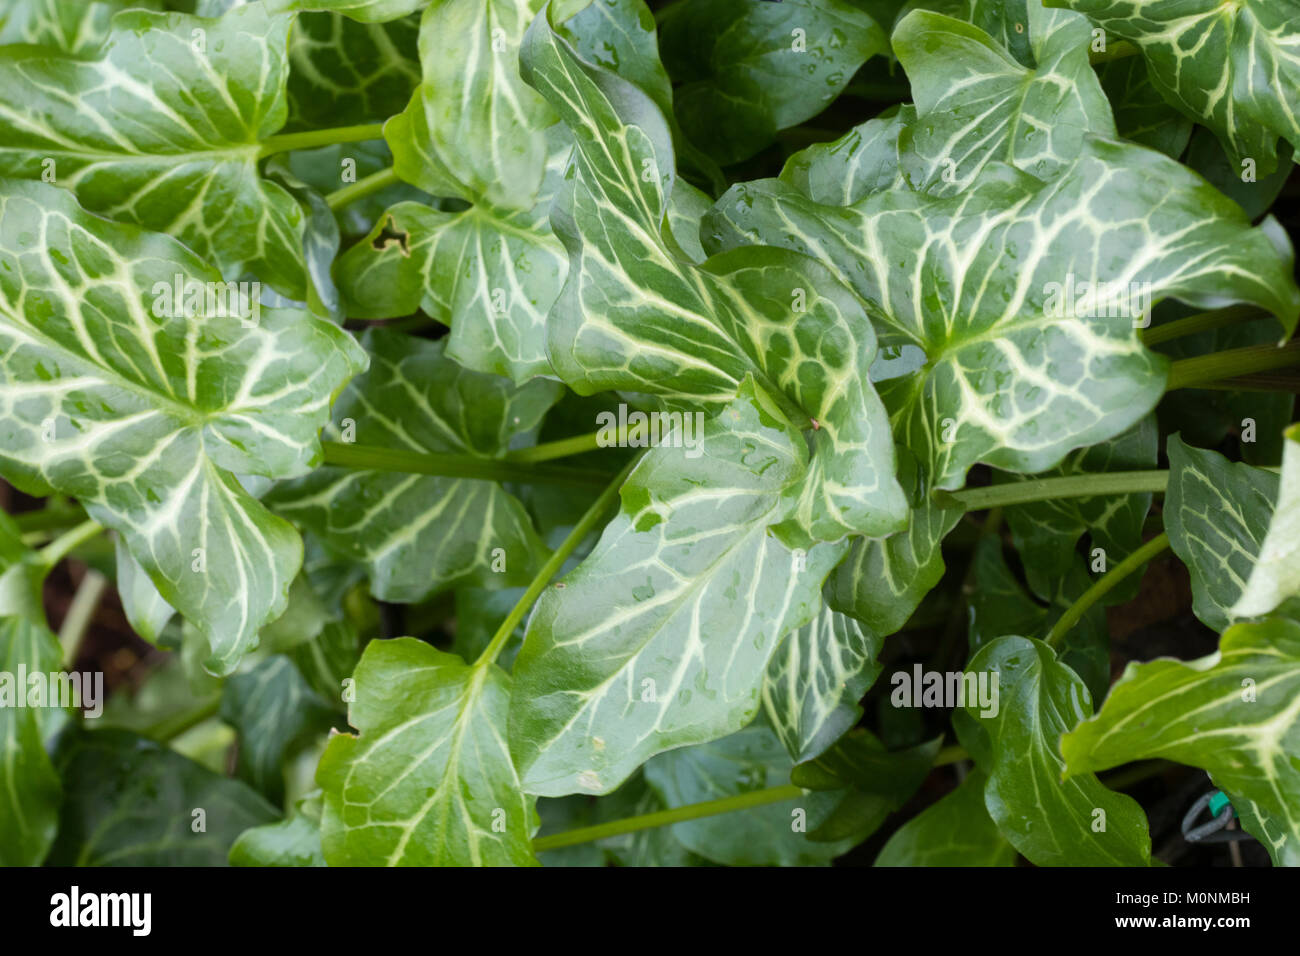 Silver netted foliage of the wintergreen perennial, Arum italicum 'Moortown Lightning' Stock Photo